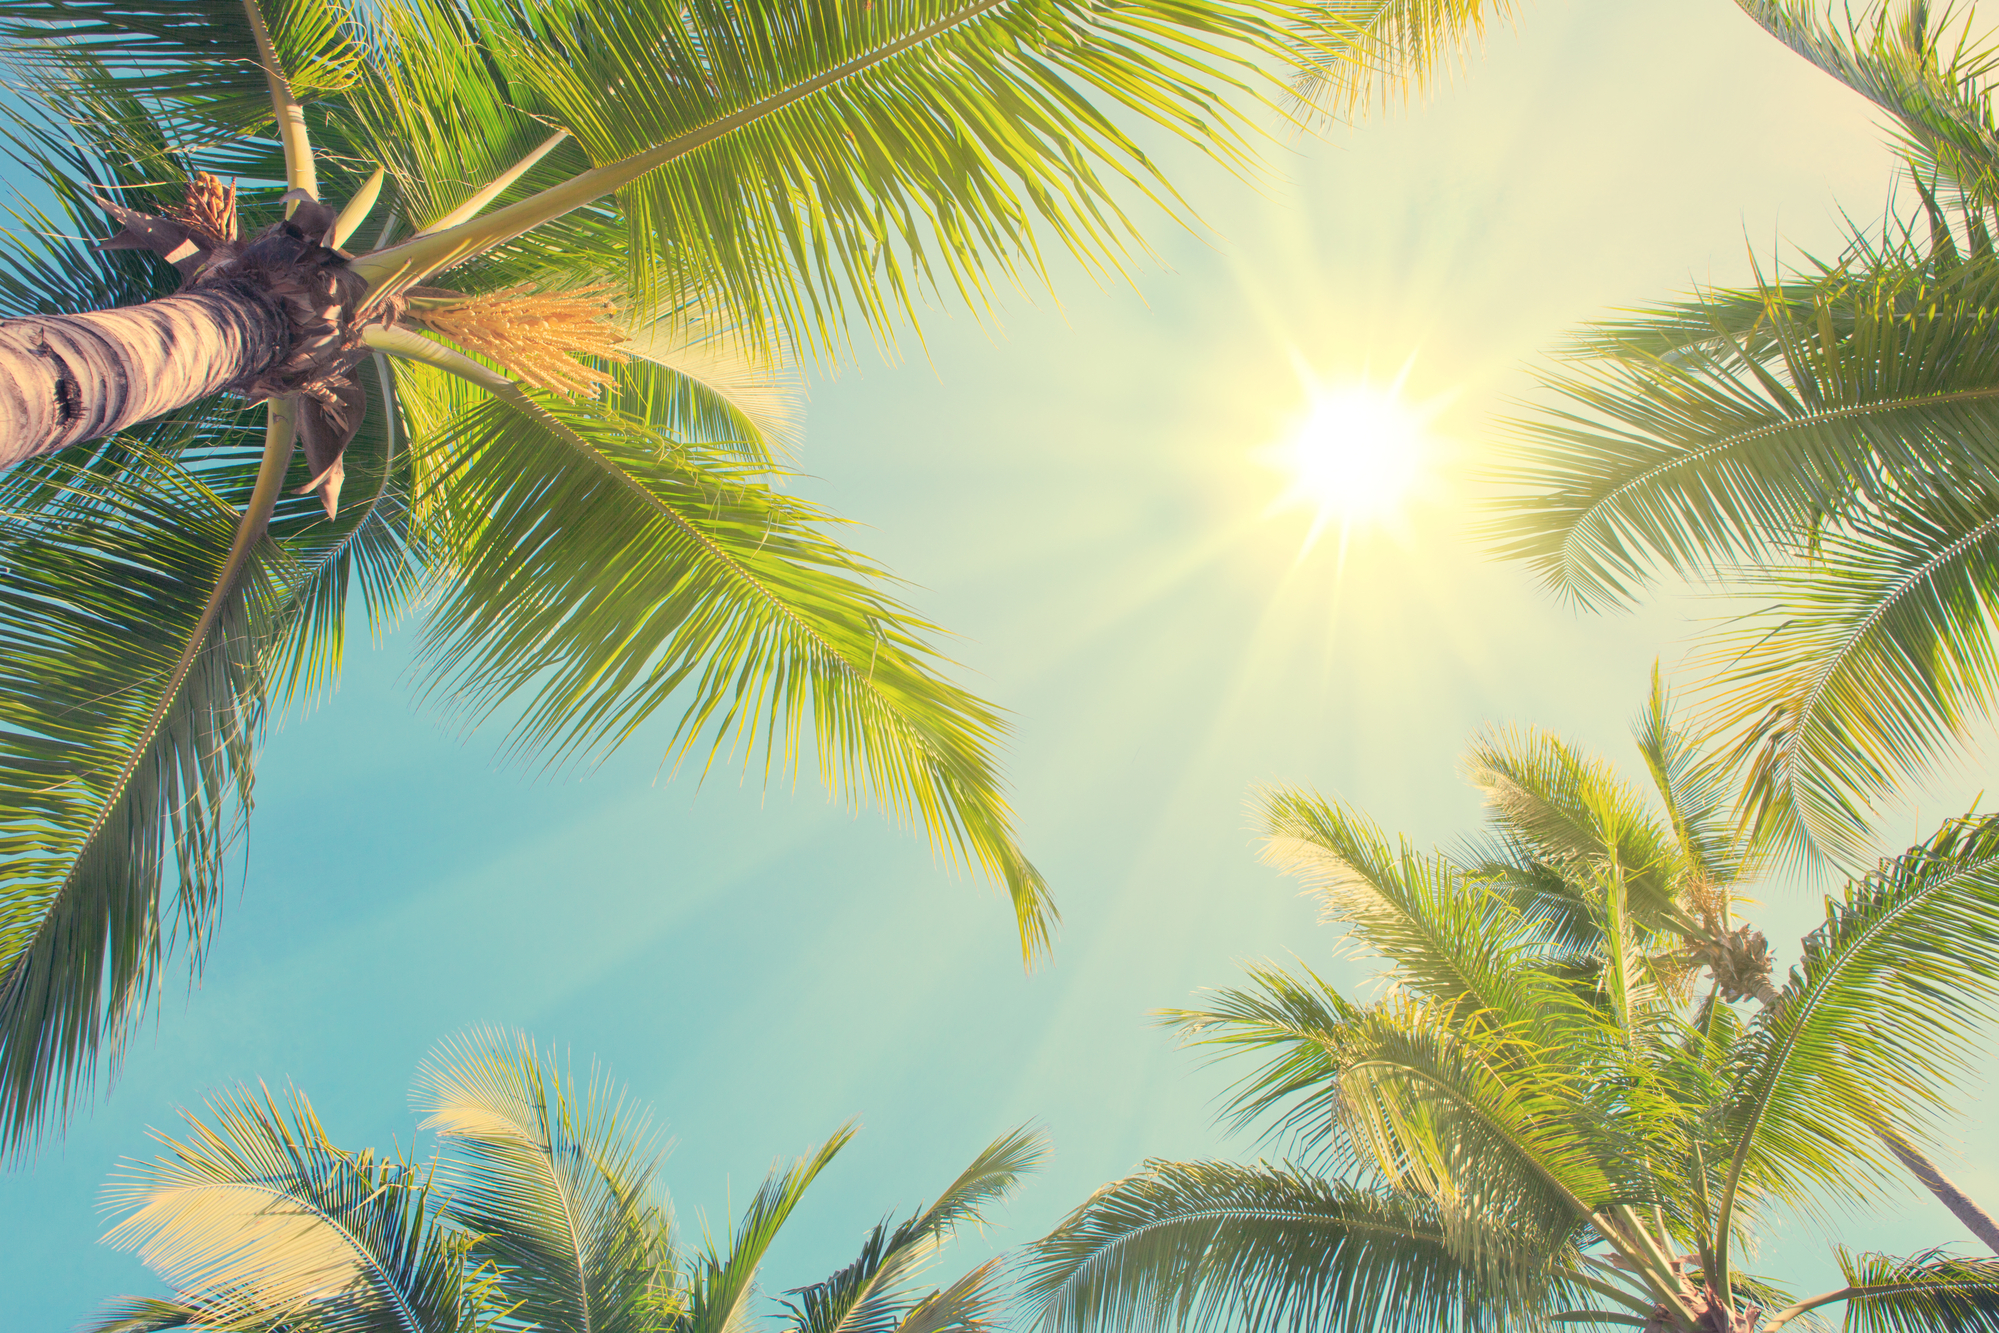 Sunshine between green palm trees. Travel background